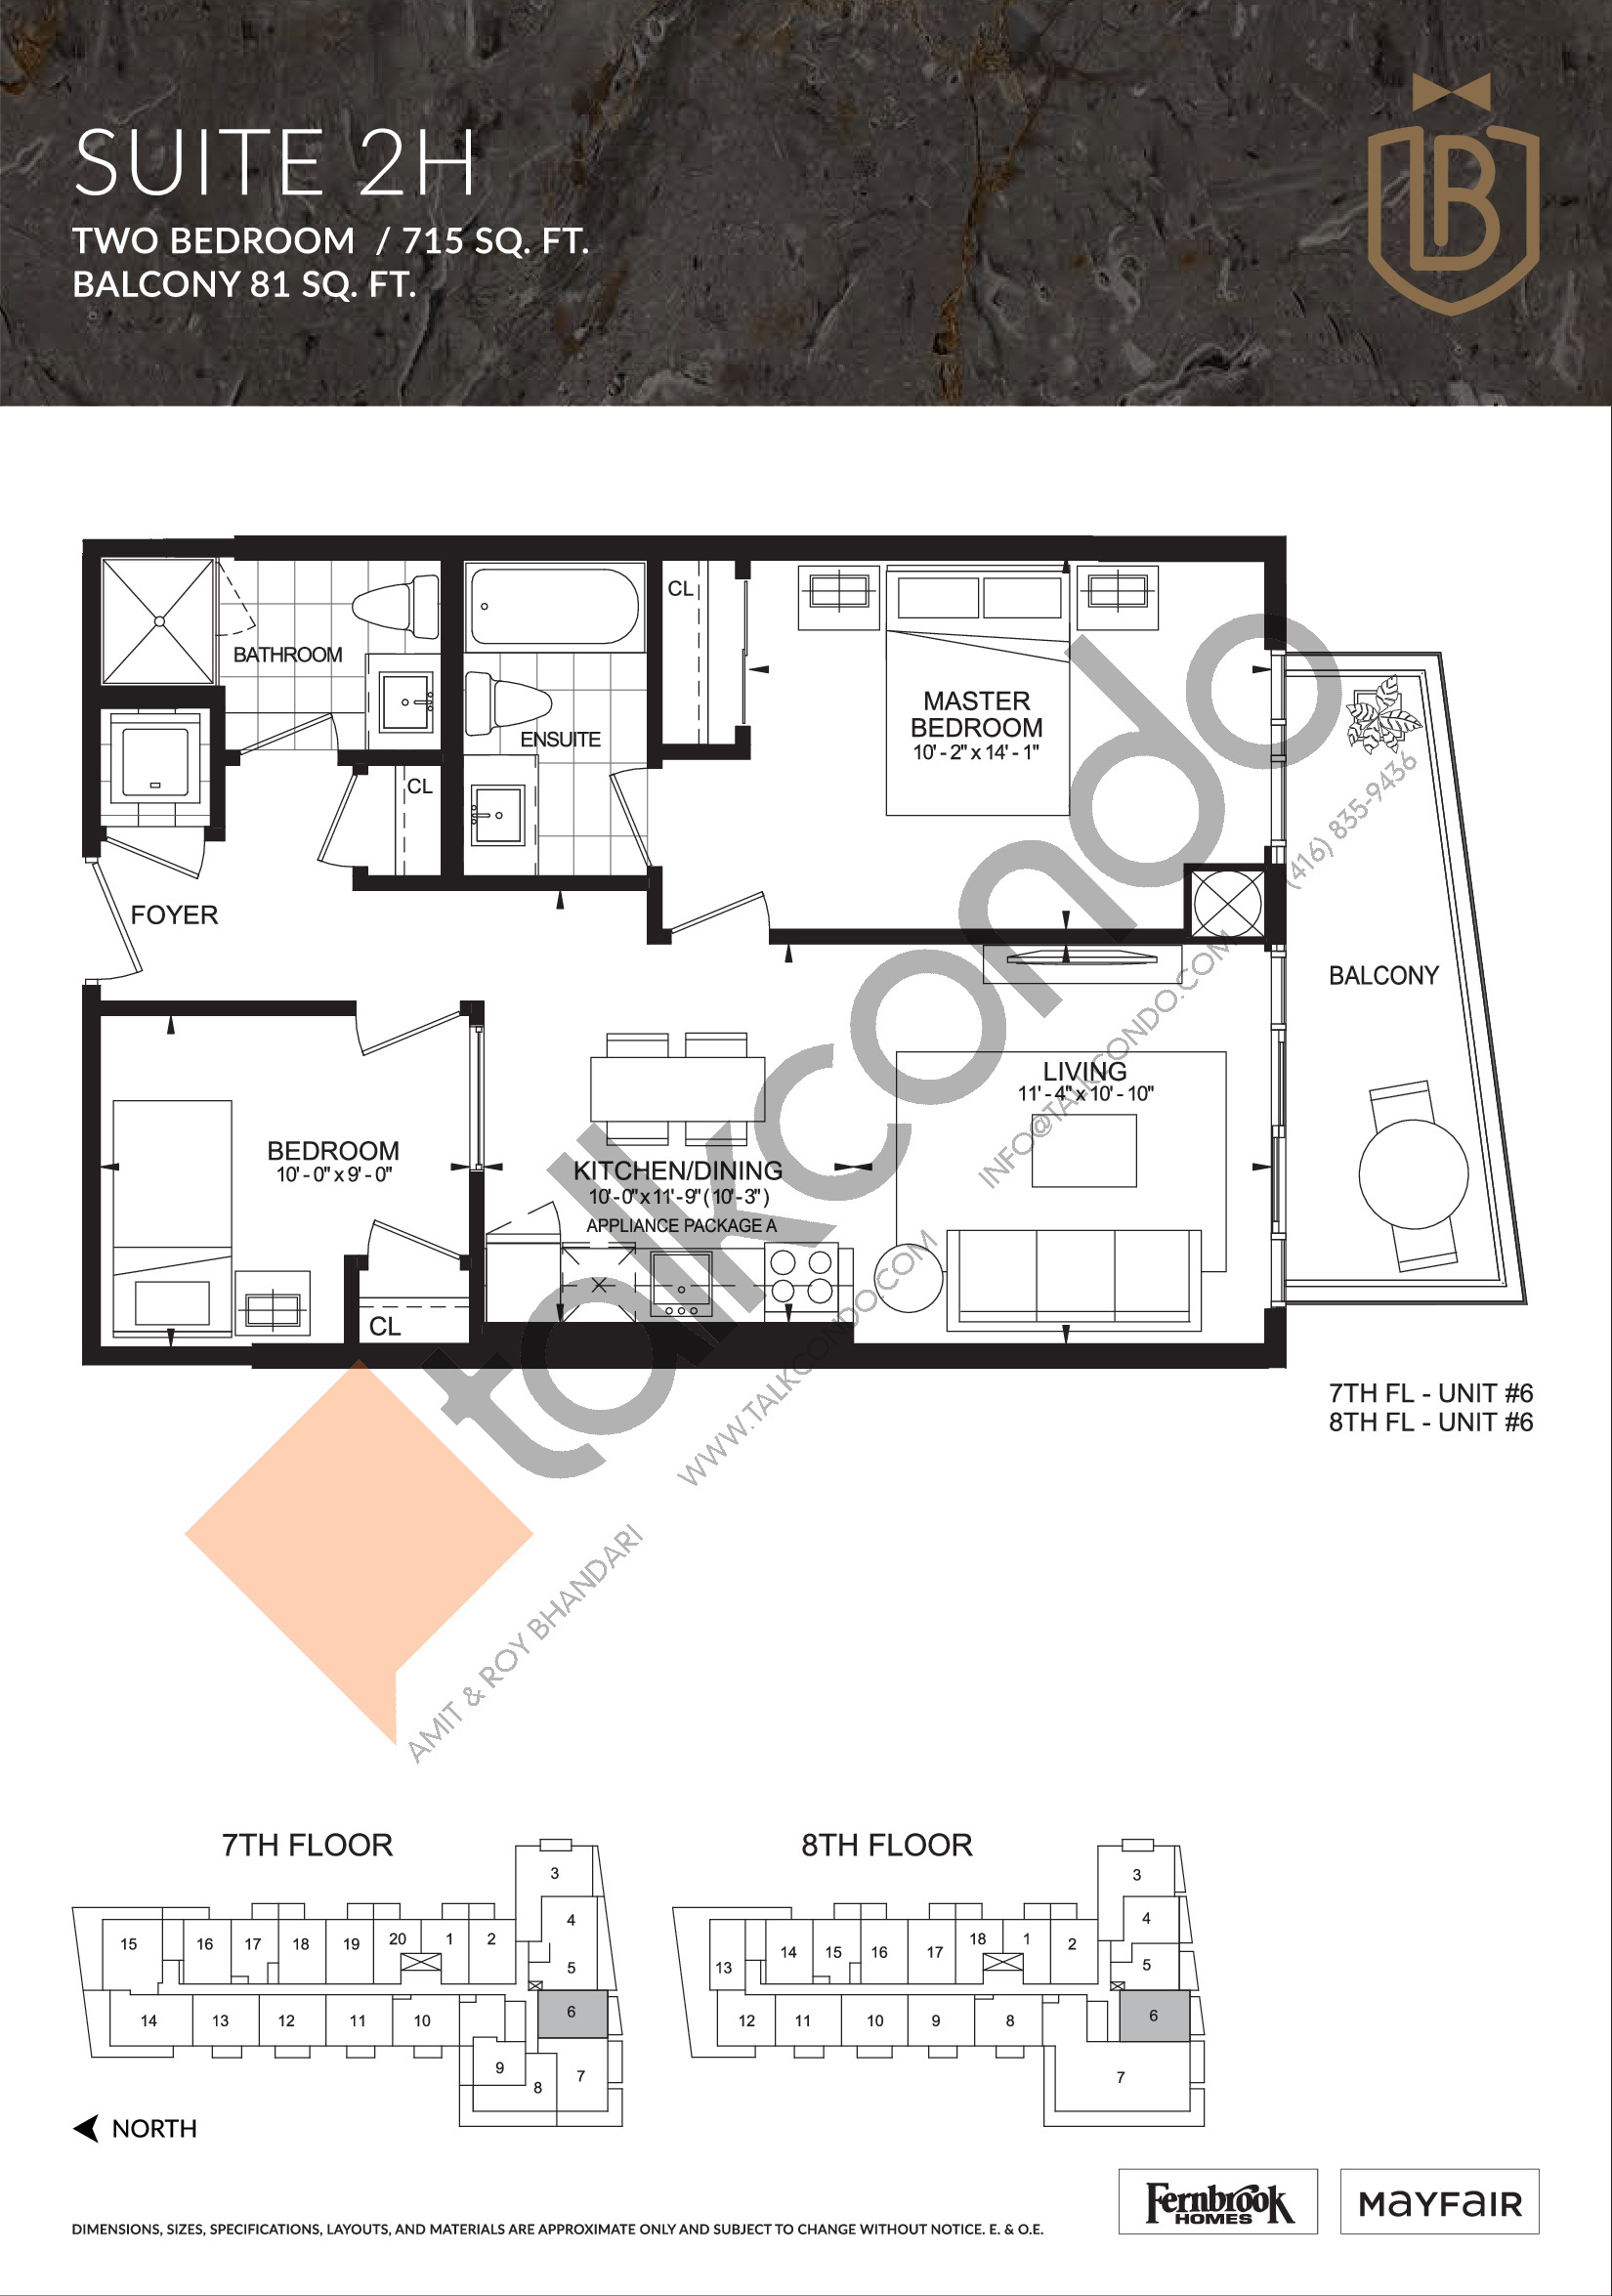 Suite 2H Floor Plan at The Butler Condos - 715 sq.ft